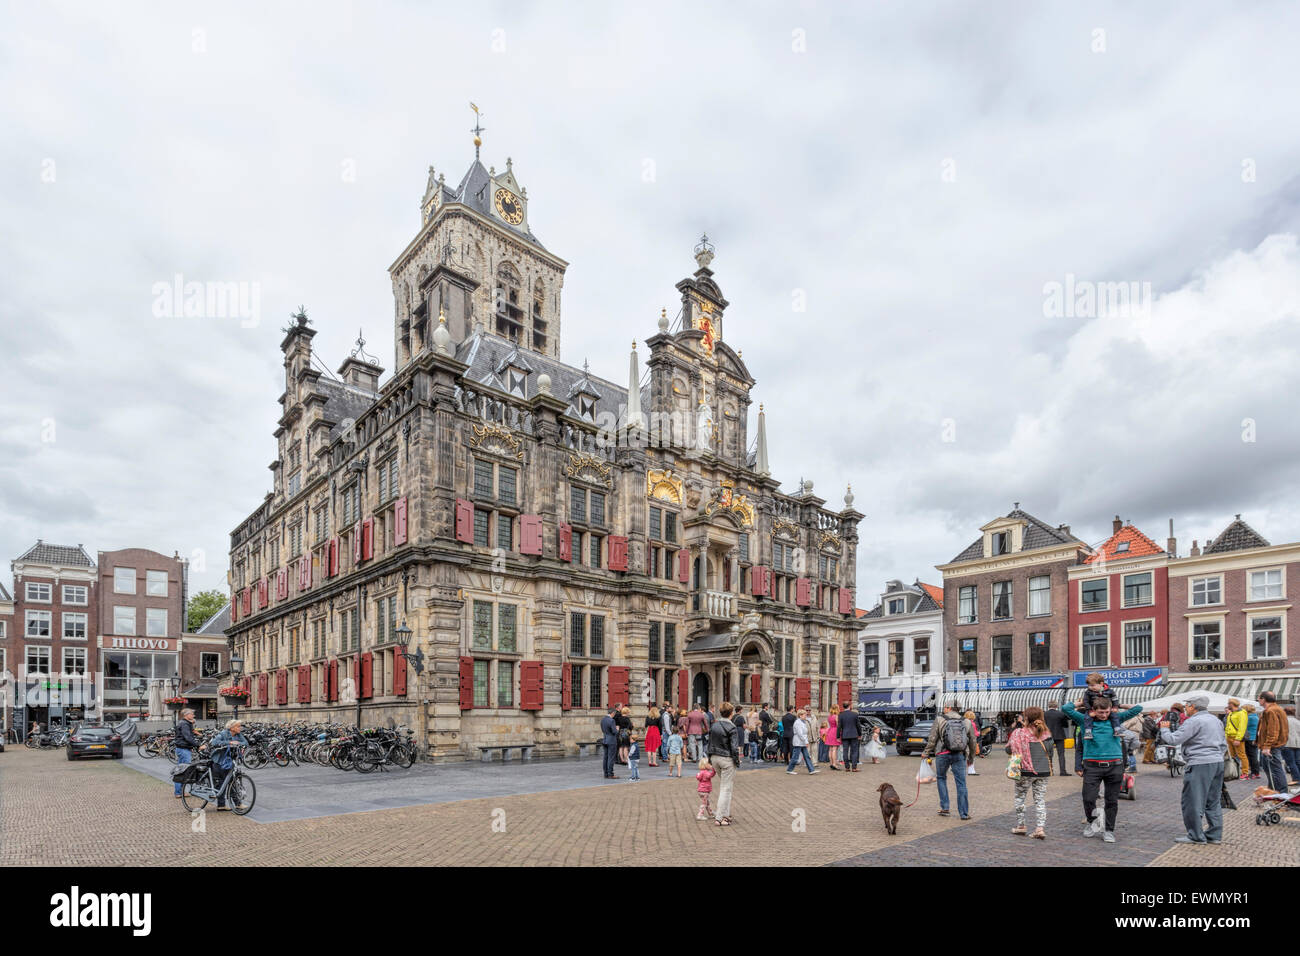 The City Hall in Delft, a Renaissance style building on the Markt  opposite the New Church, South Holland, The Netherlands. - Stock Image